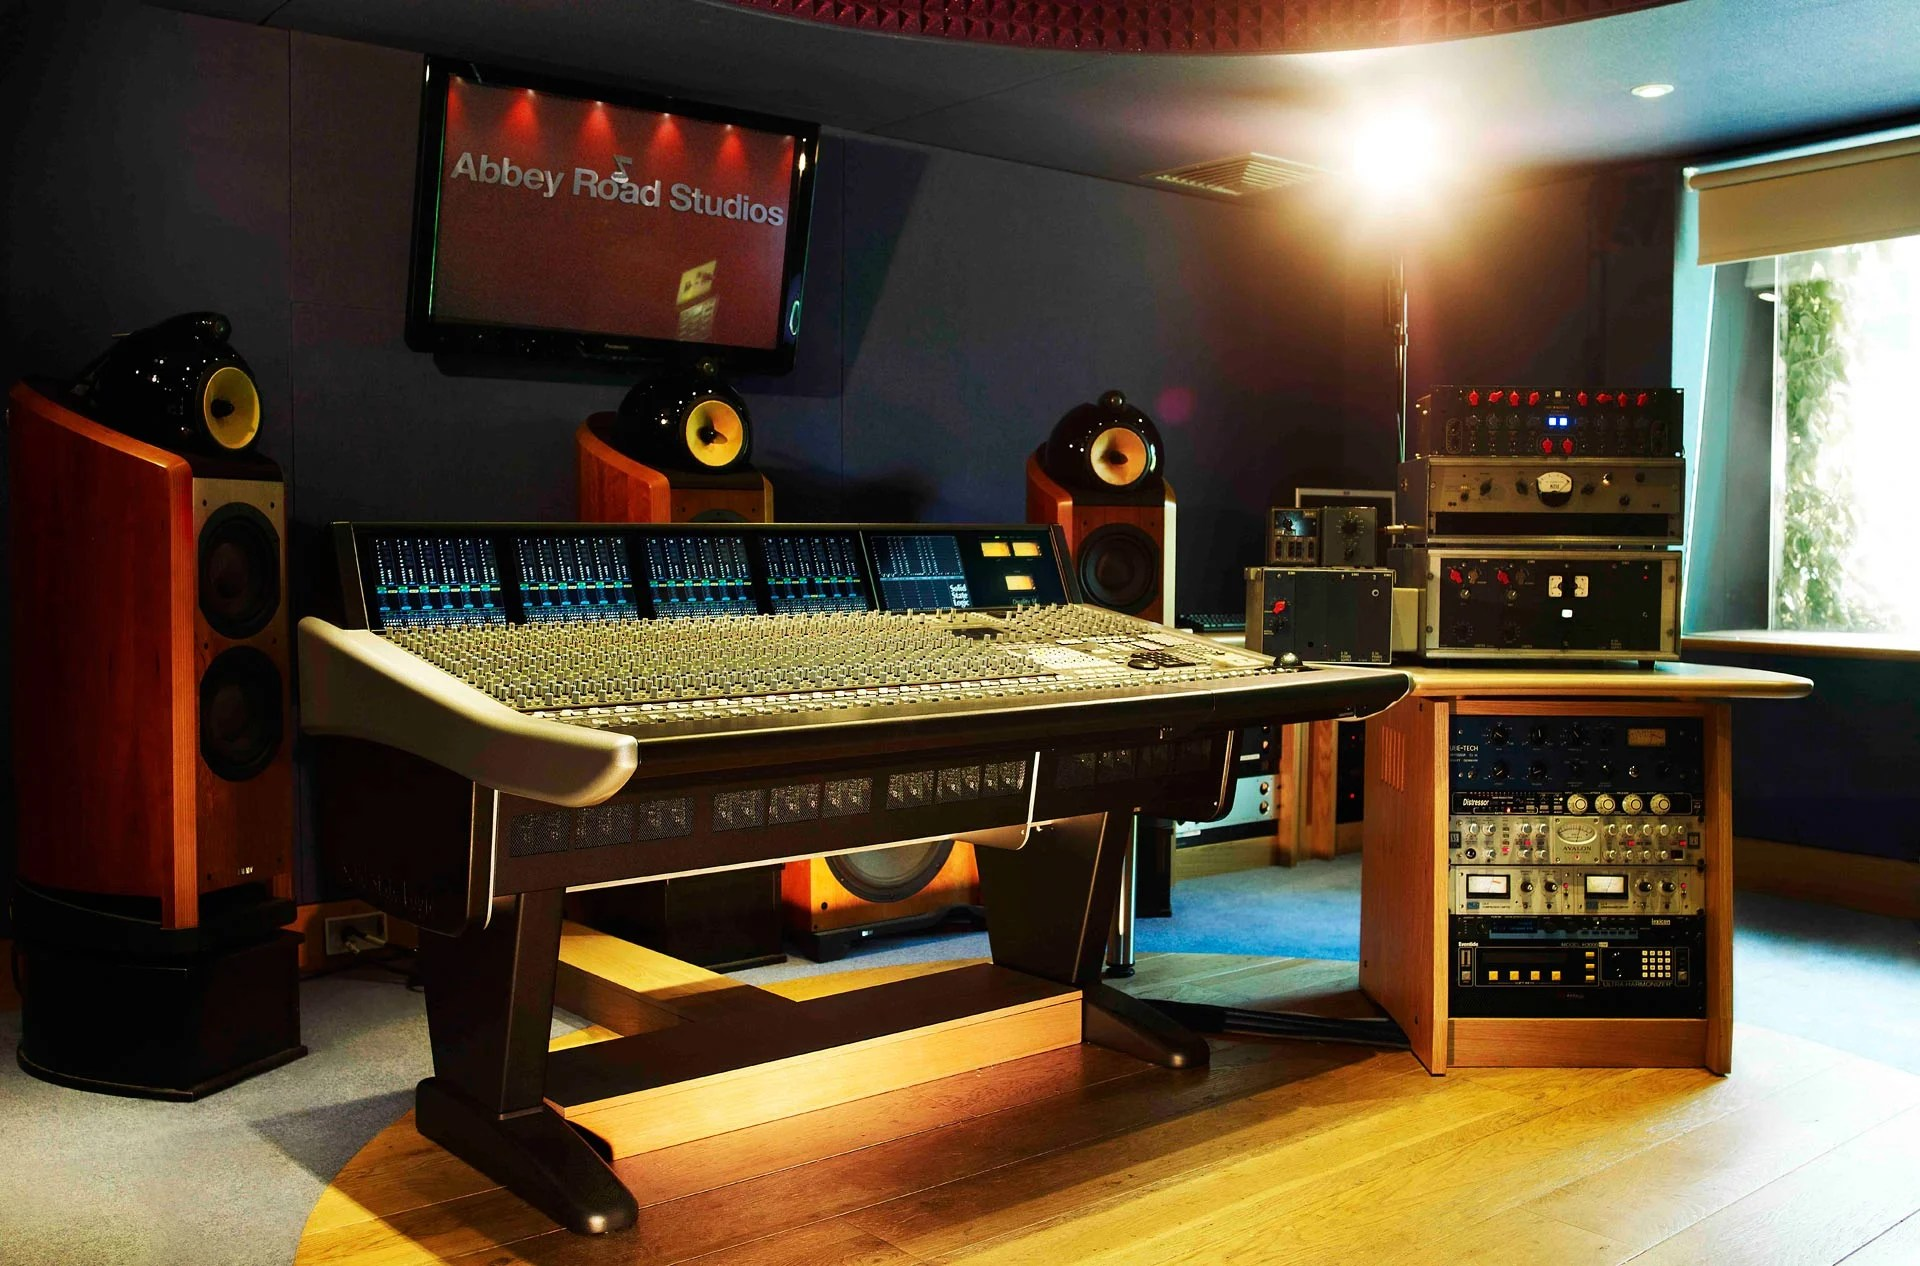 New Abbey Roads Studio Audio Technology Offers Mastering